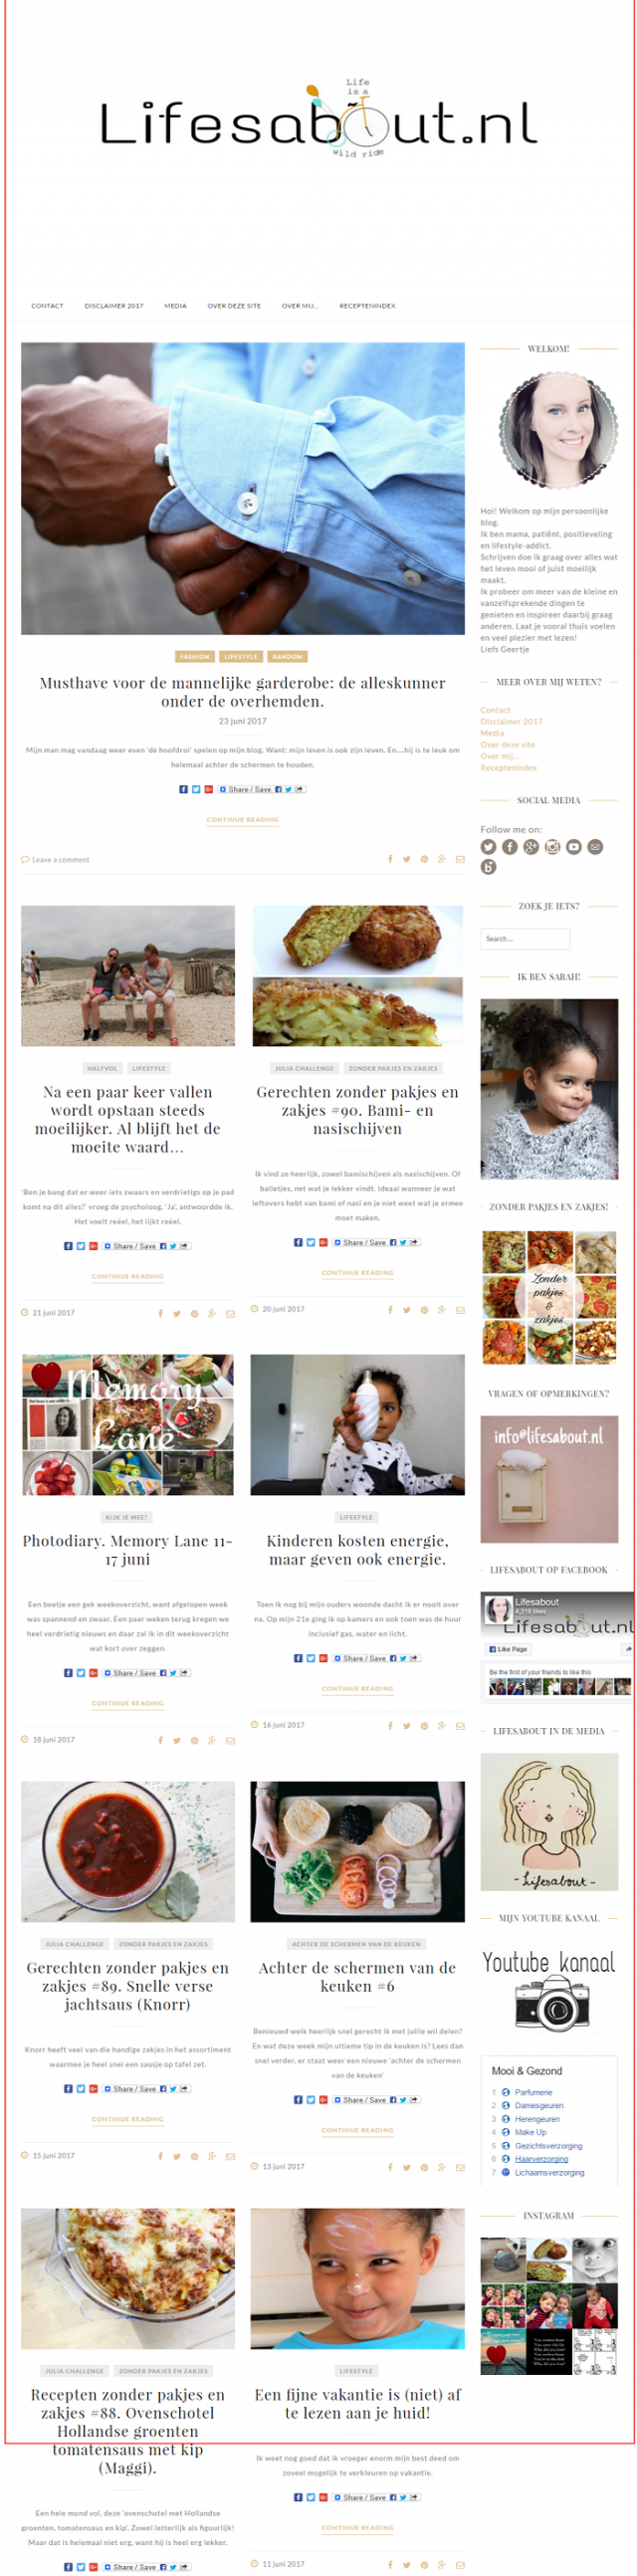 Homepage Lifesabout.nl